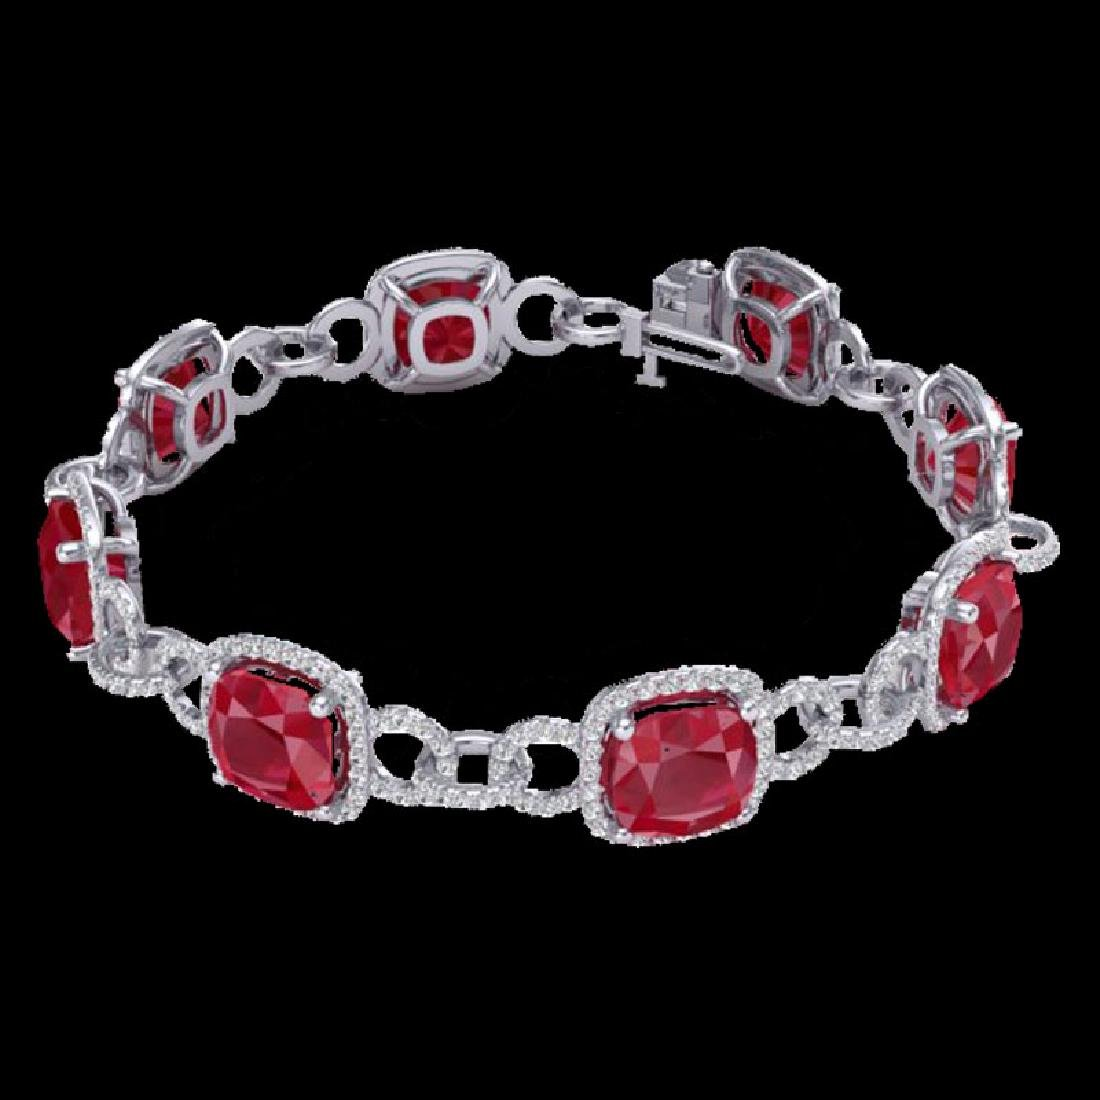 25 CTW Ruby & Micro VS/SI Diamond Bracelet 14K White